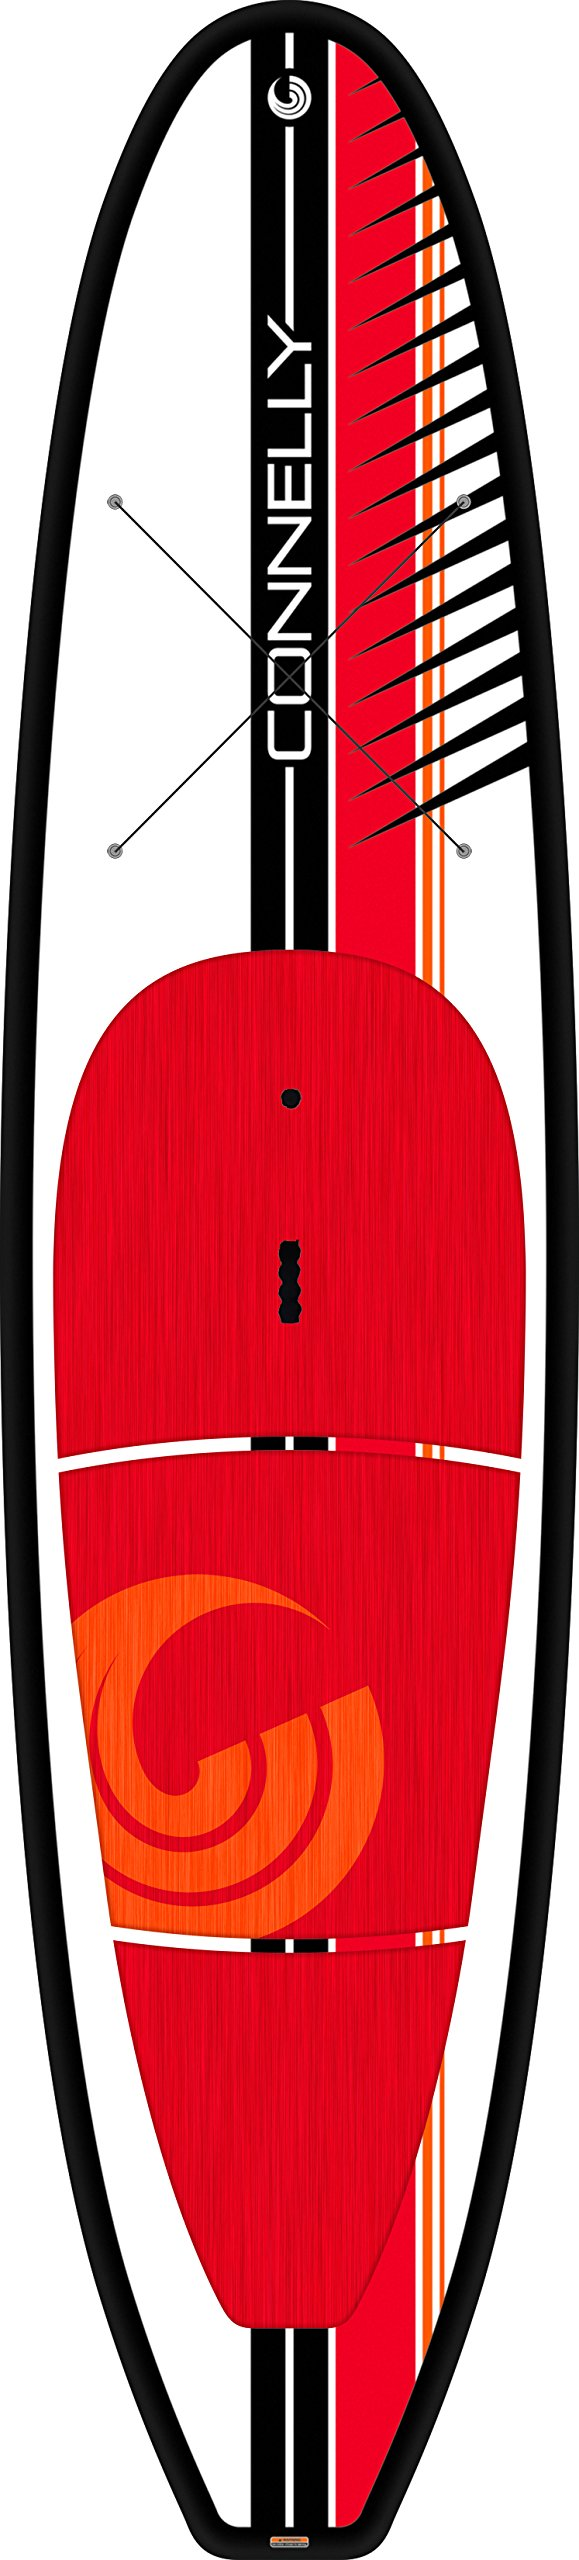 Connelly Skis Classic Stand Up Paddle Board, 11-Feet by CWB